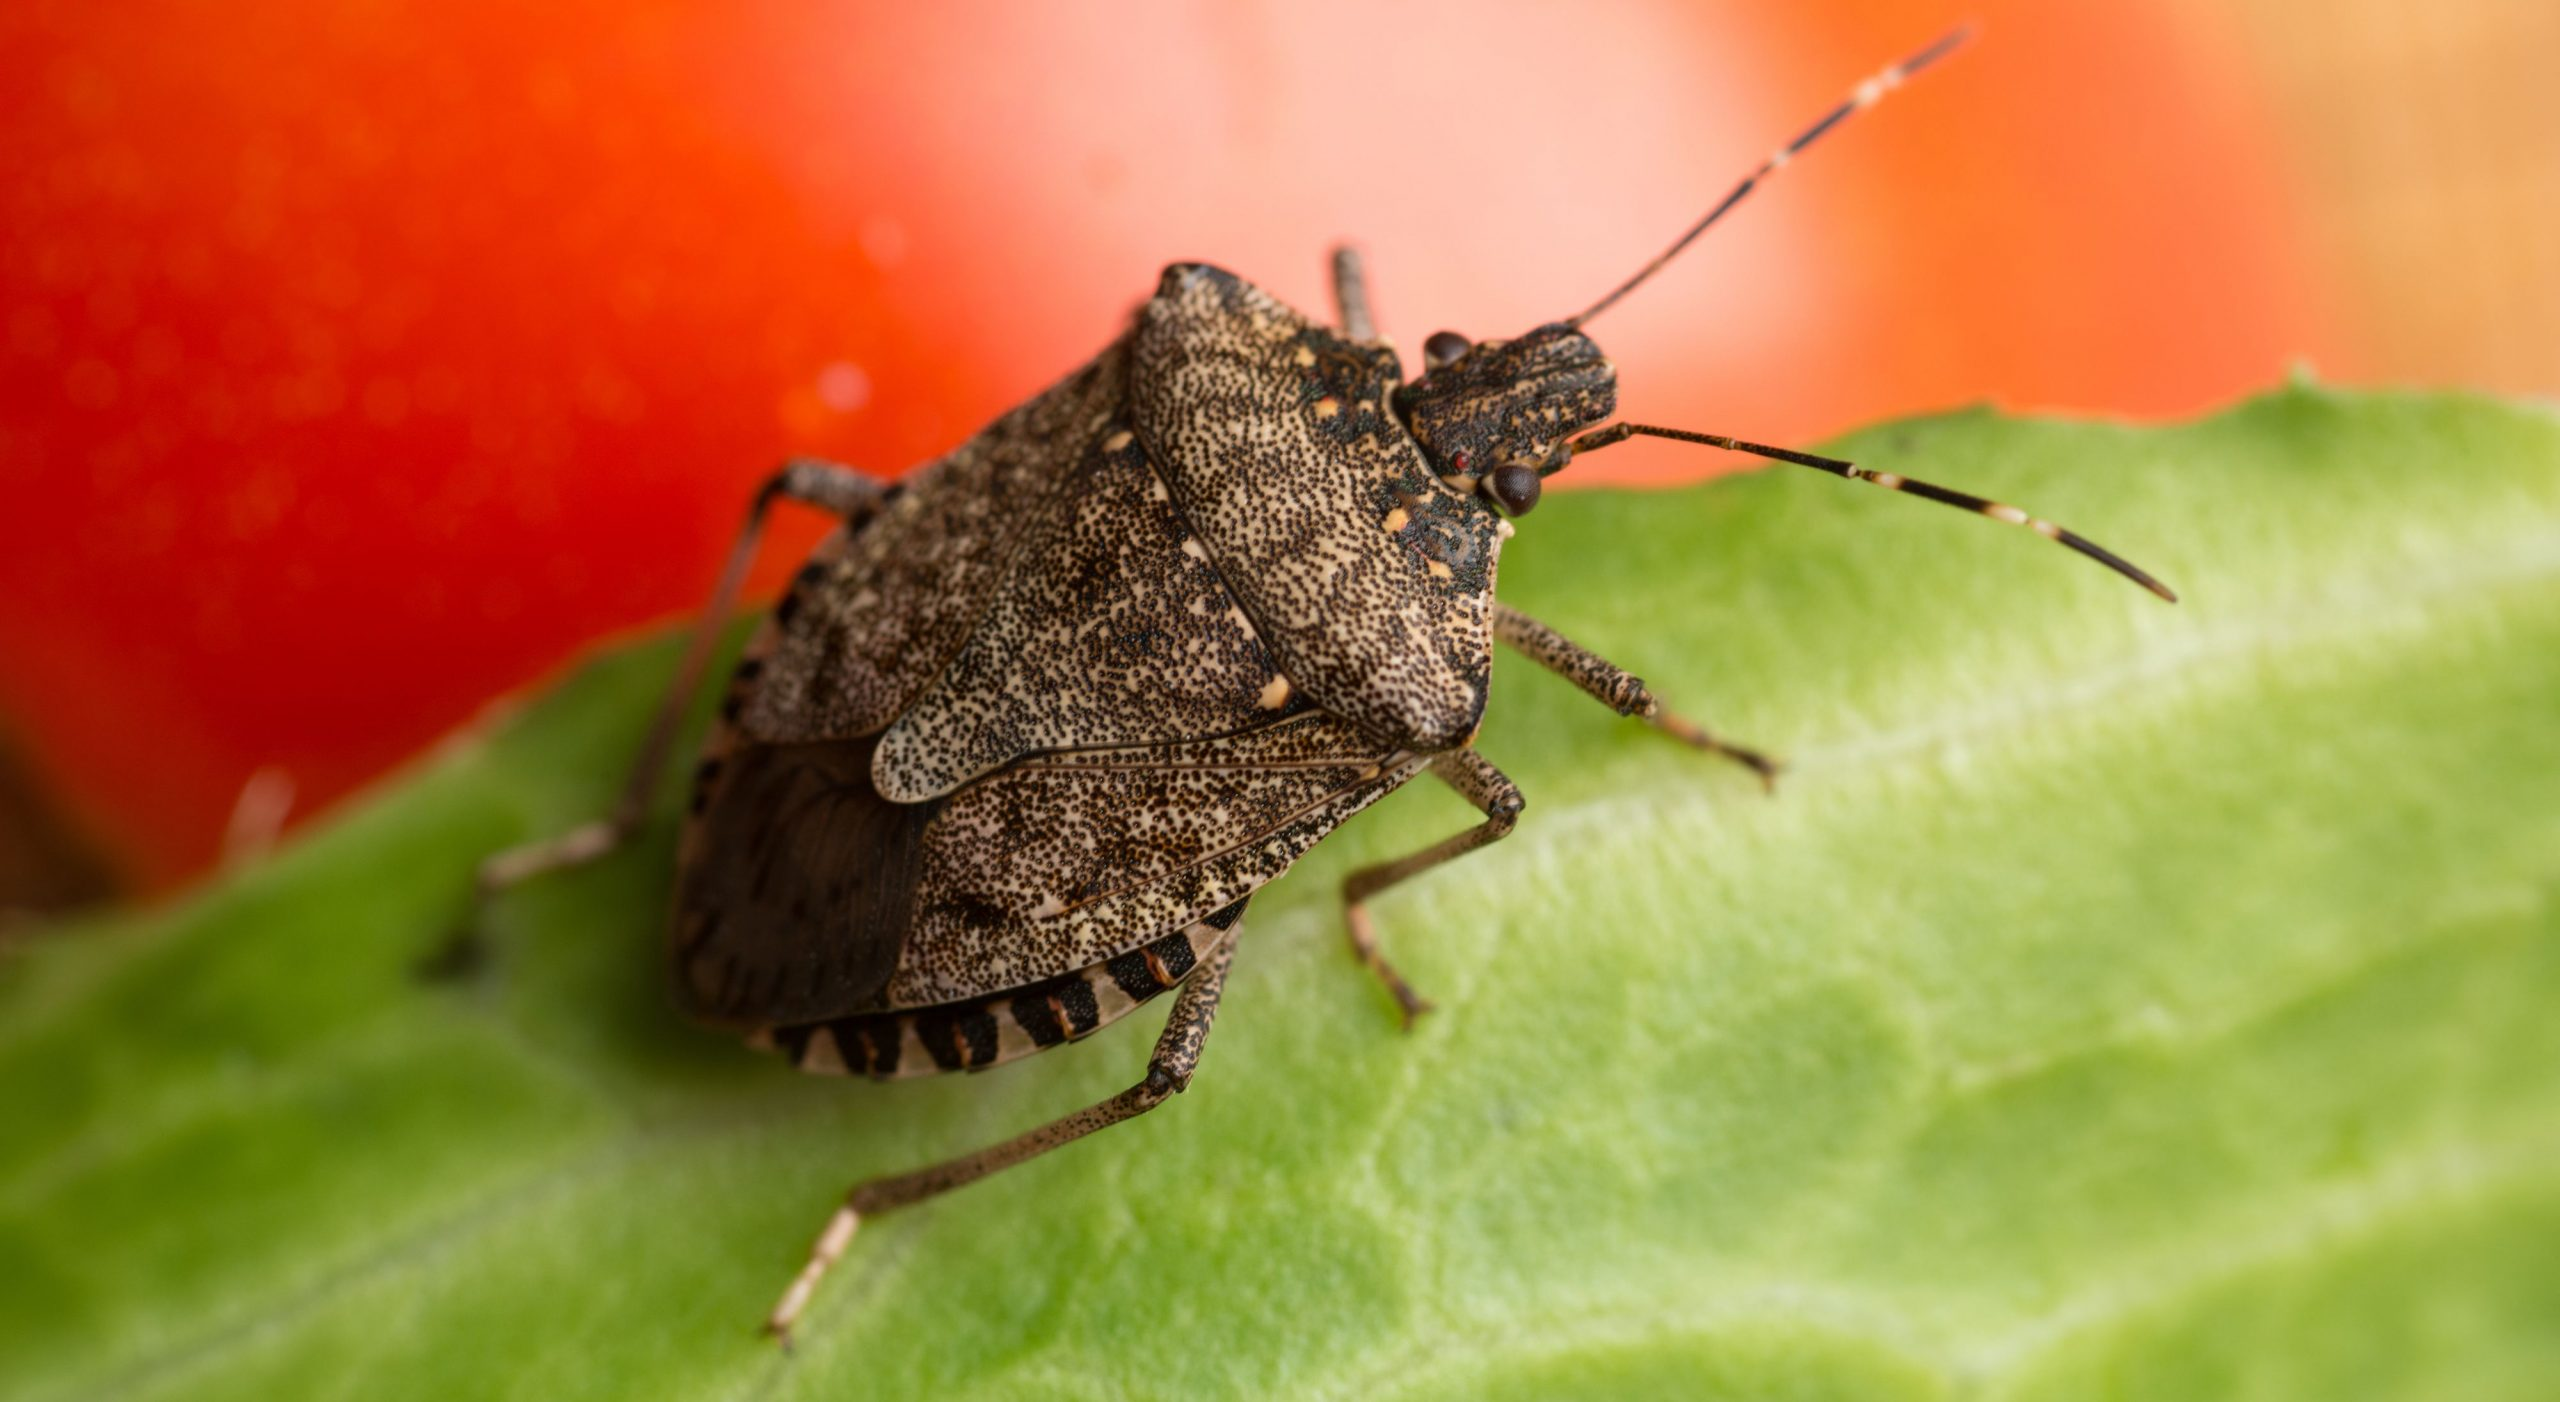 before going to know how to get rid of stink bugs it's important to know what attracts them most, what is their nature, and finally the preventive measures.